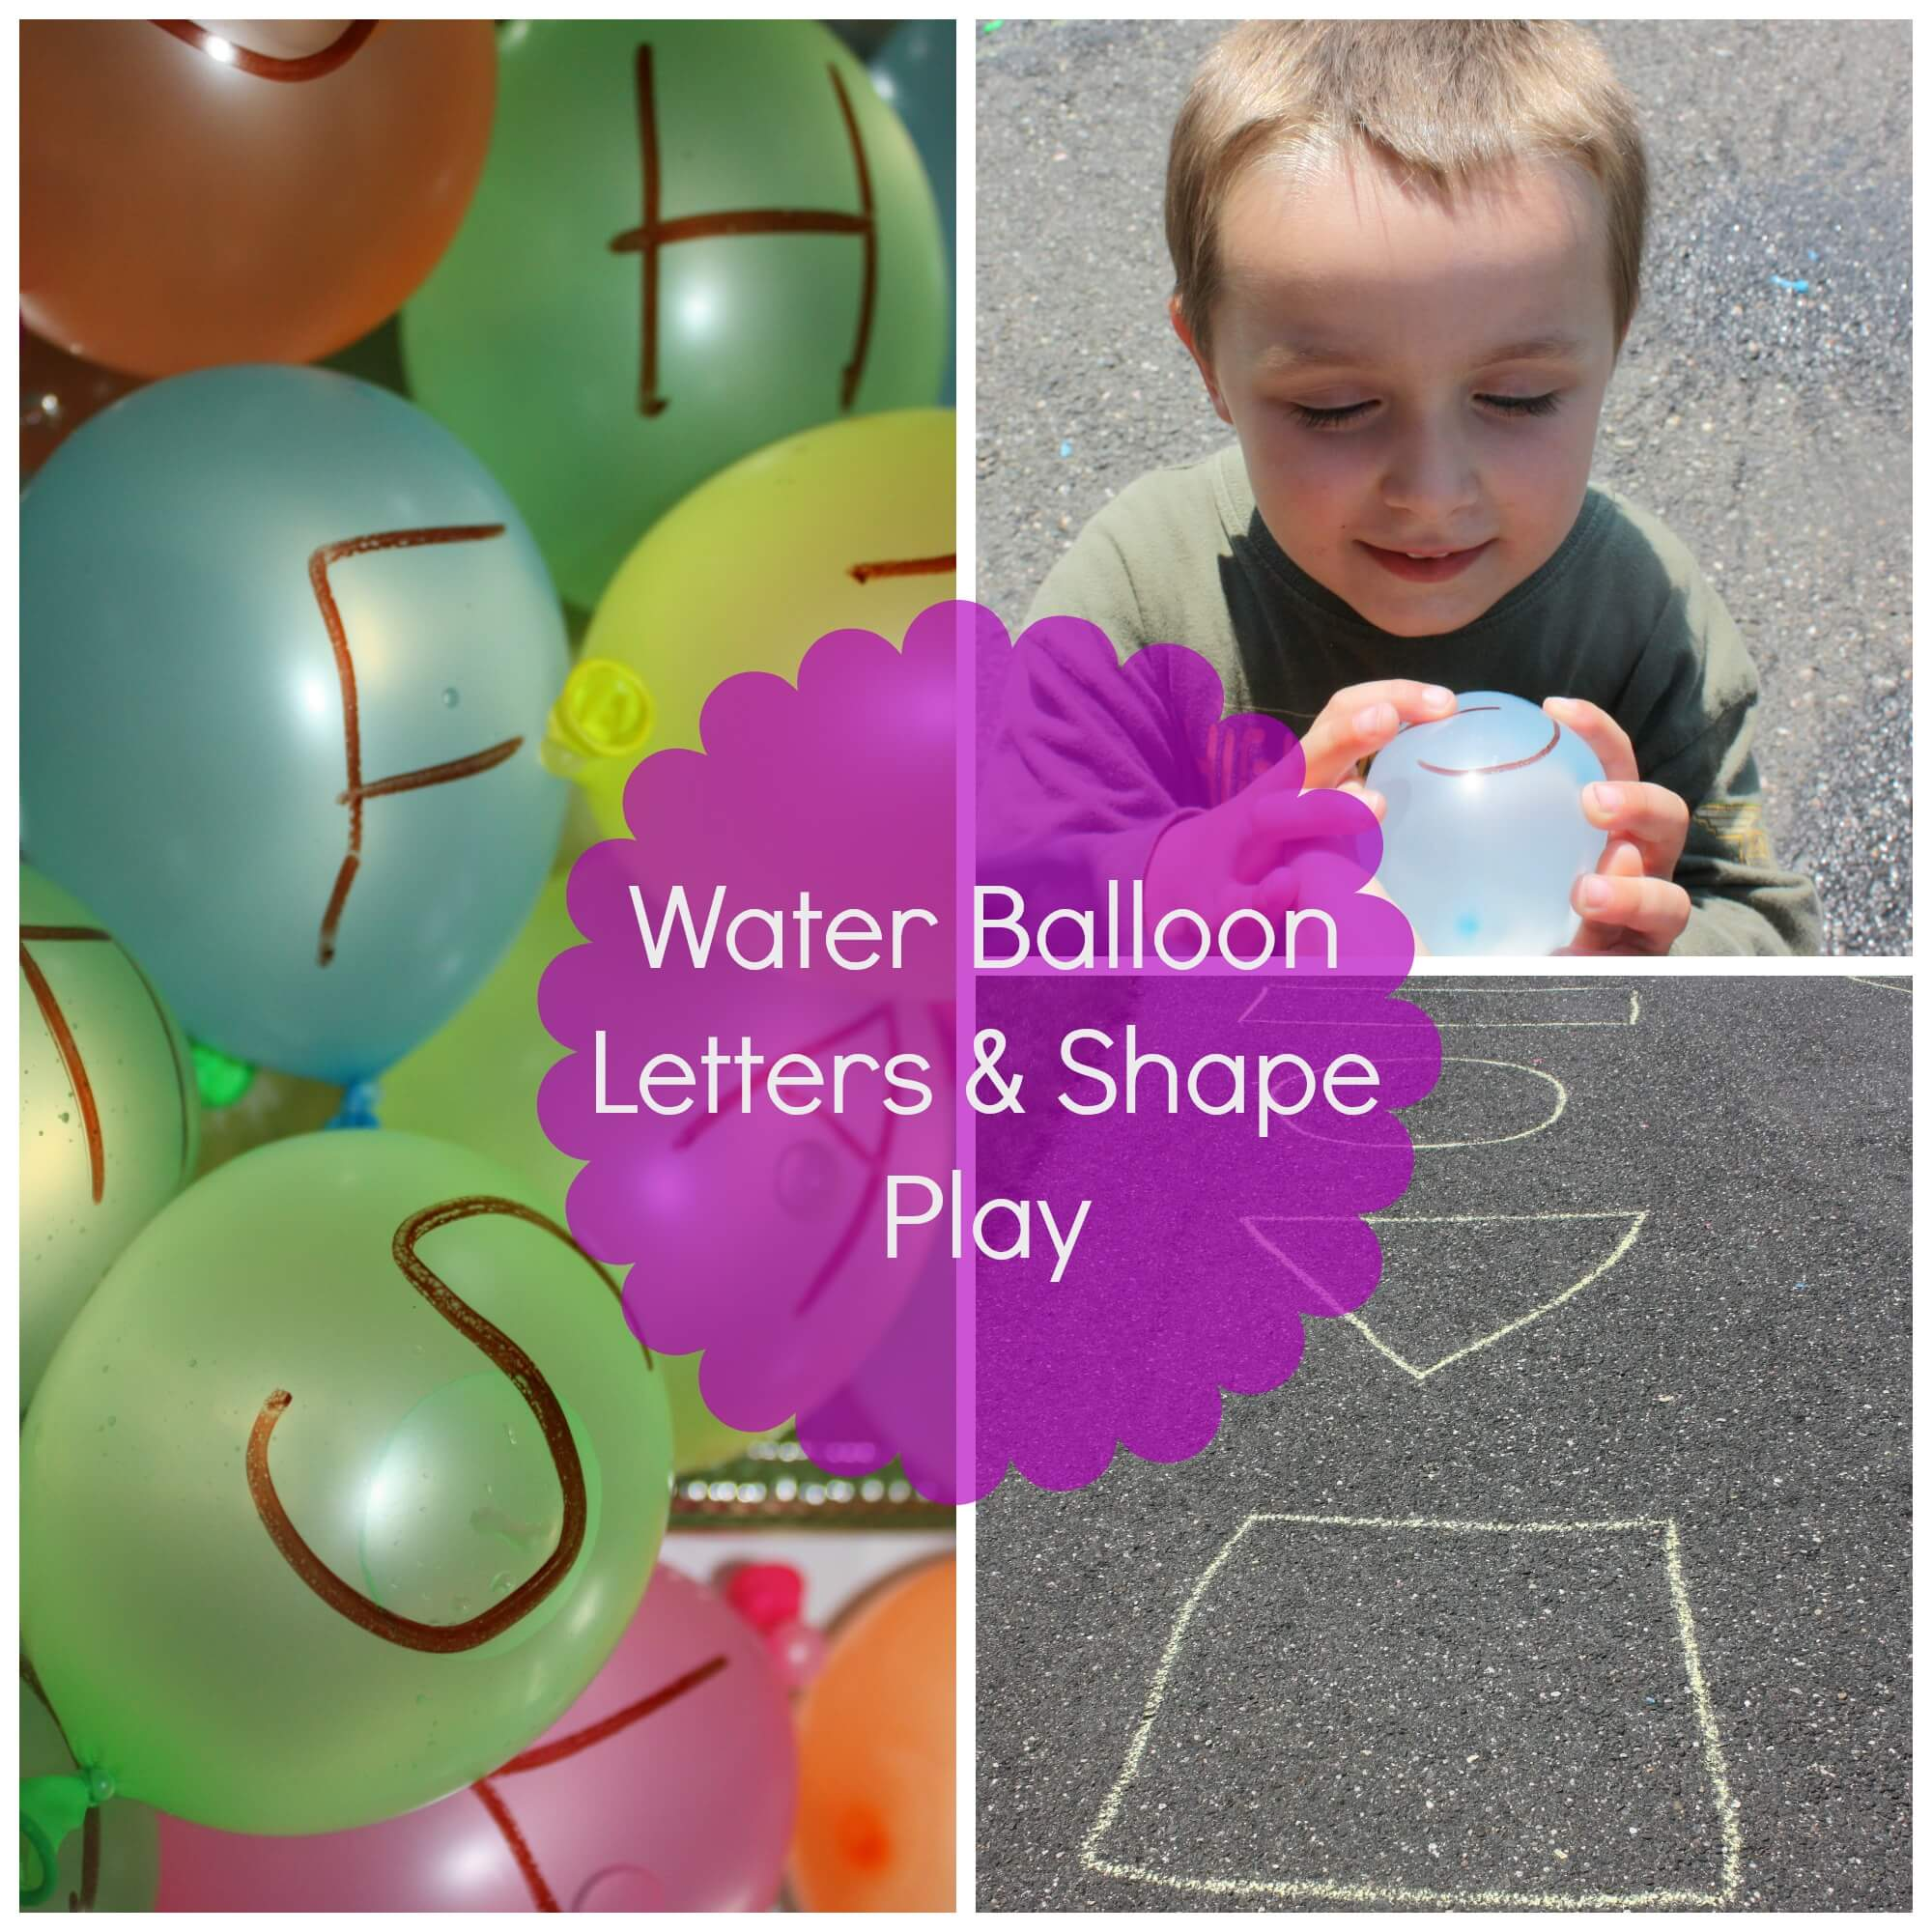 Water Ballon Letters & Shapes Play